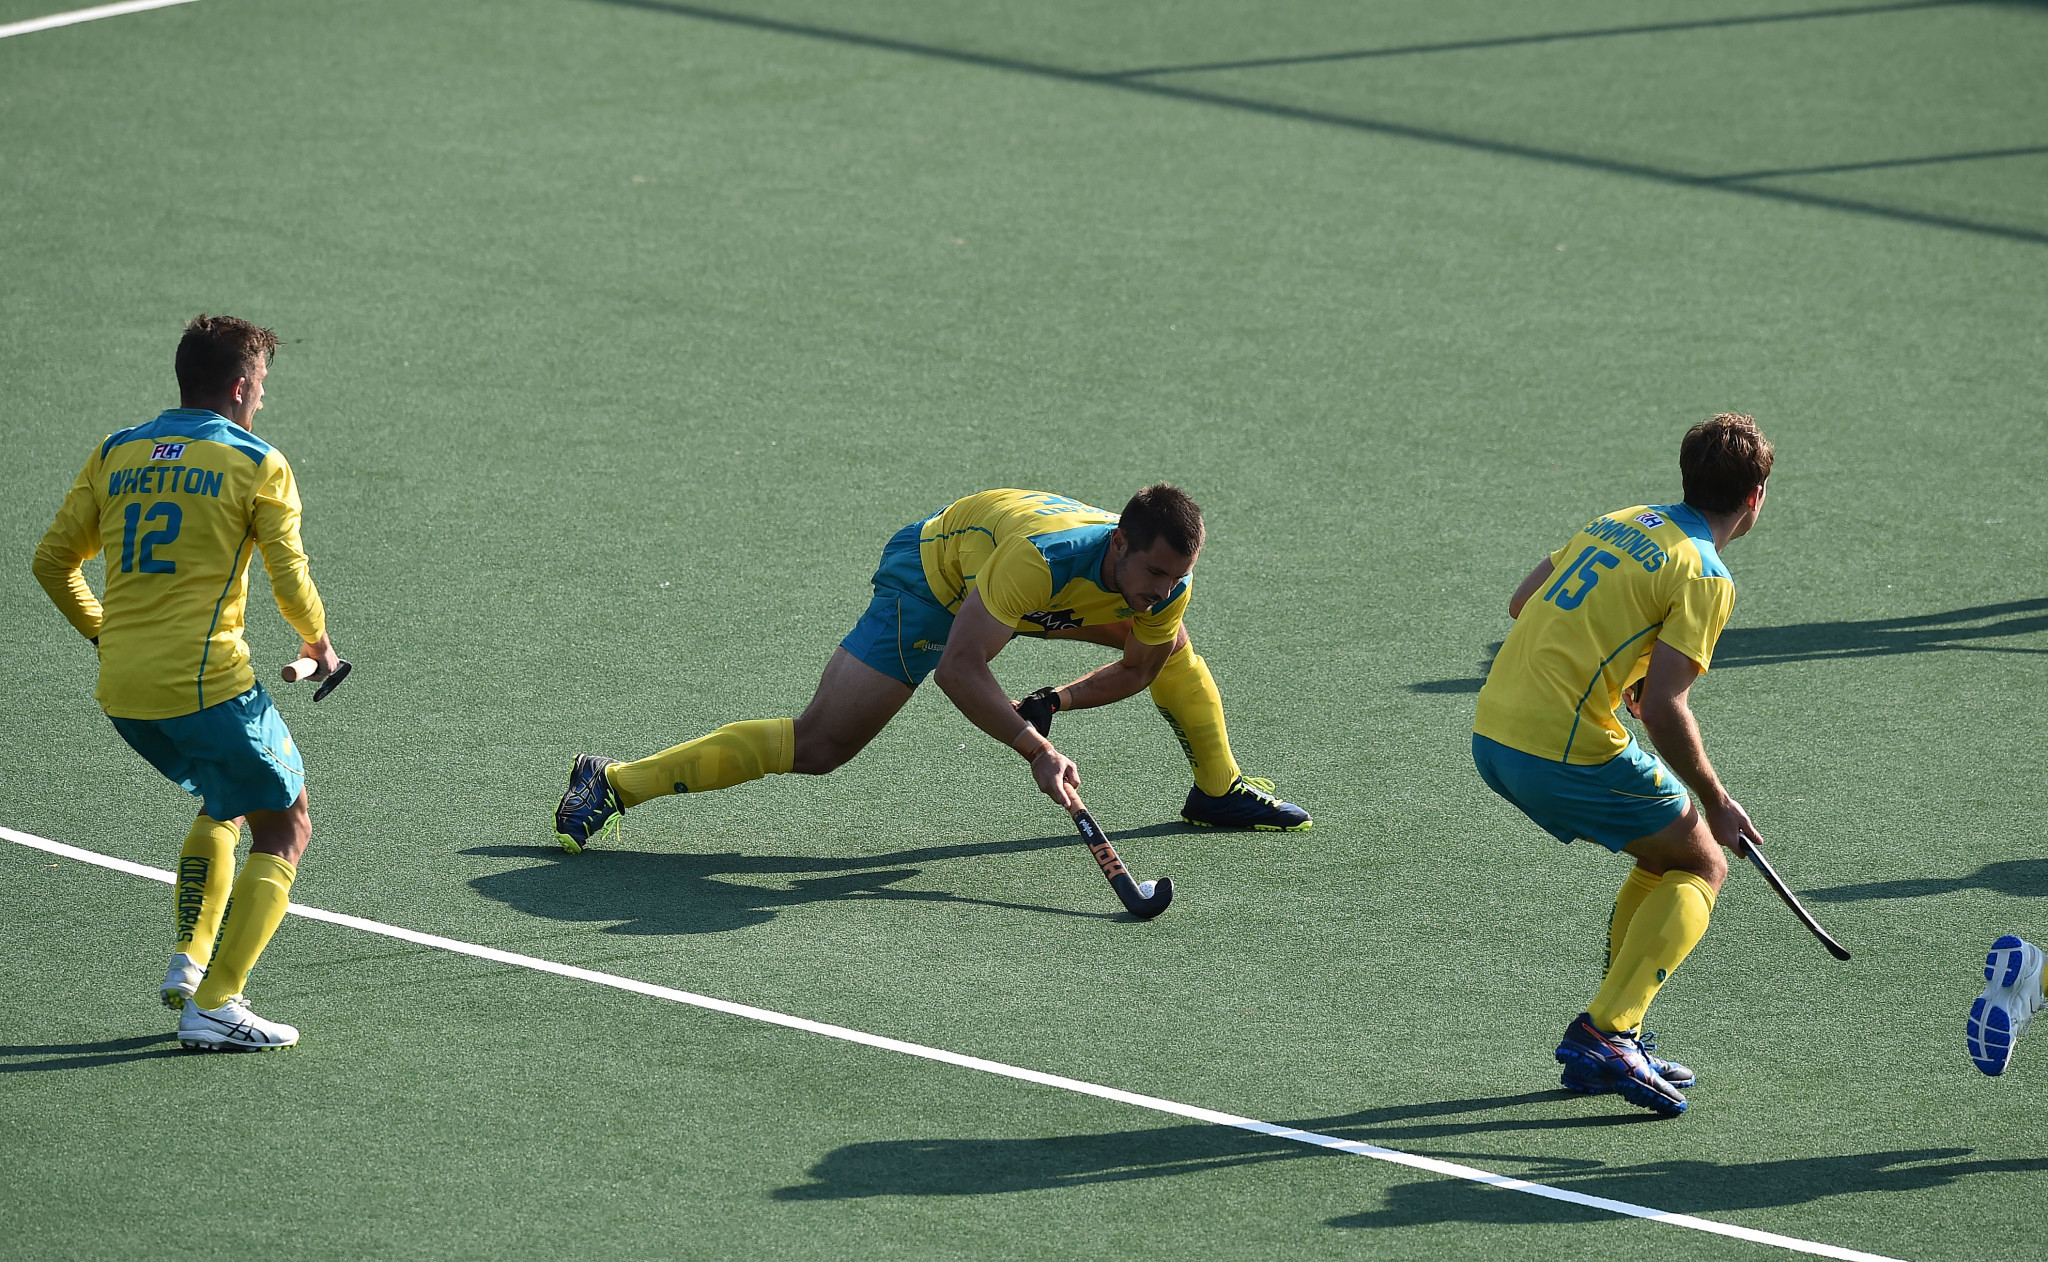 Inaugural Hockey Pro League season poised for Grand Finals climax in Amsterdam